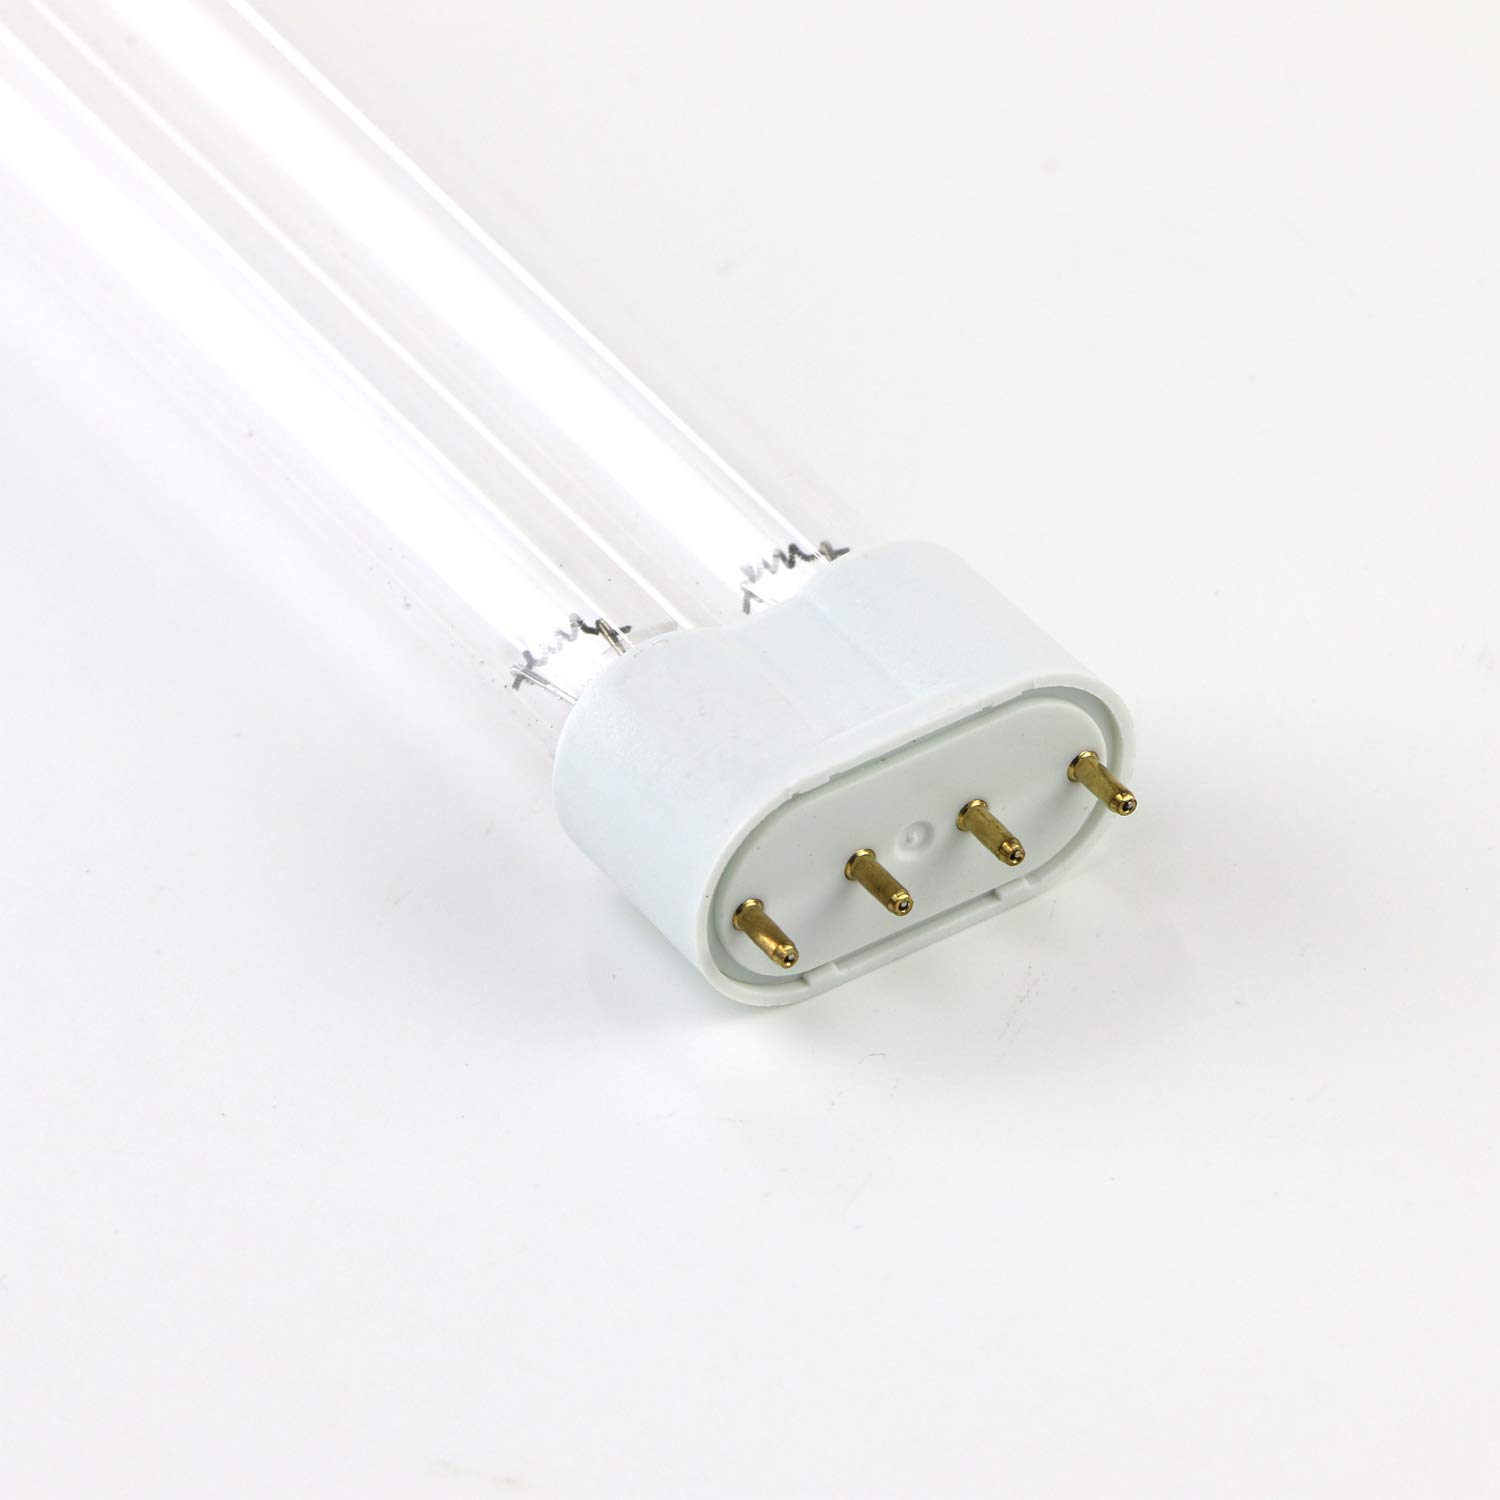 Aquarium Koi Pond Fish Tank UV Sterilizer Replace jebao sunsun jebo Light Bulb 36w 4-pin 2g11 Linear Twin Tube Transparent Quartz by Sun Sun